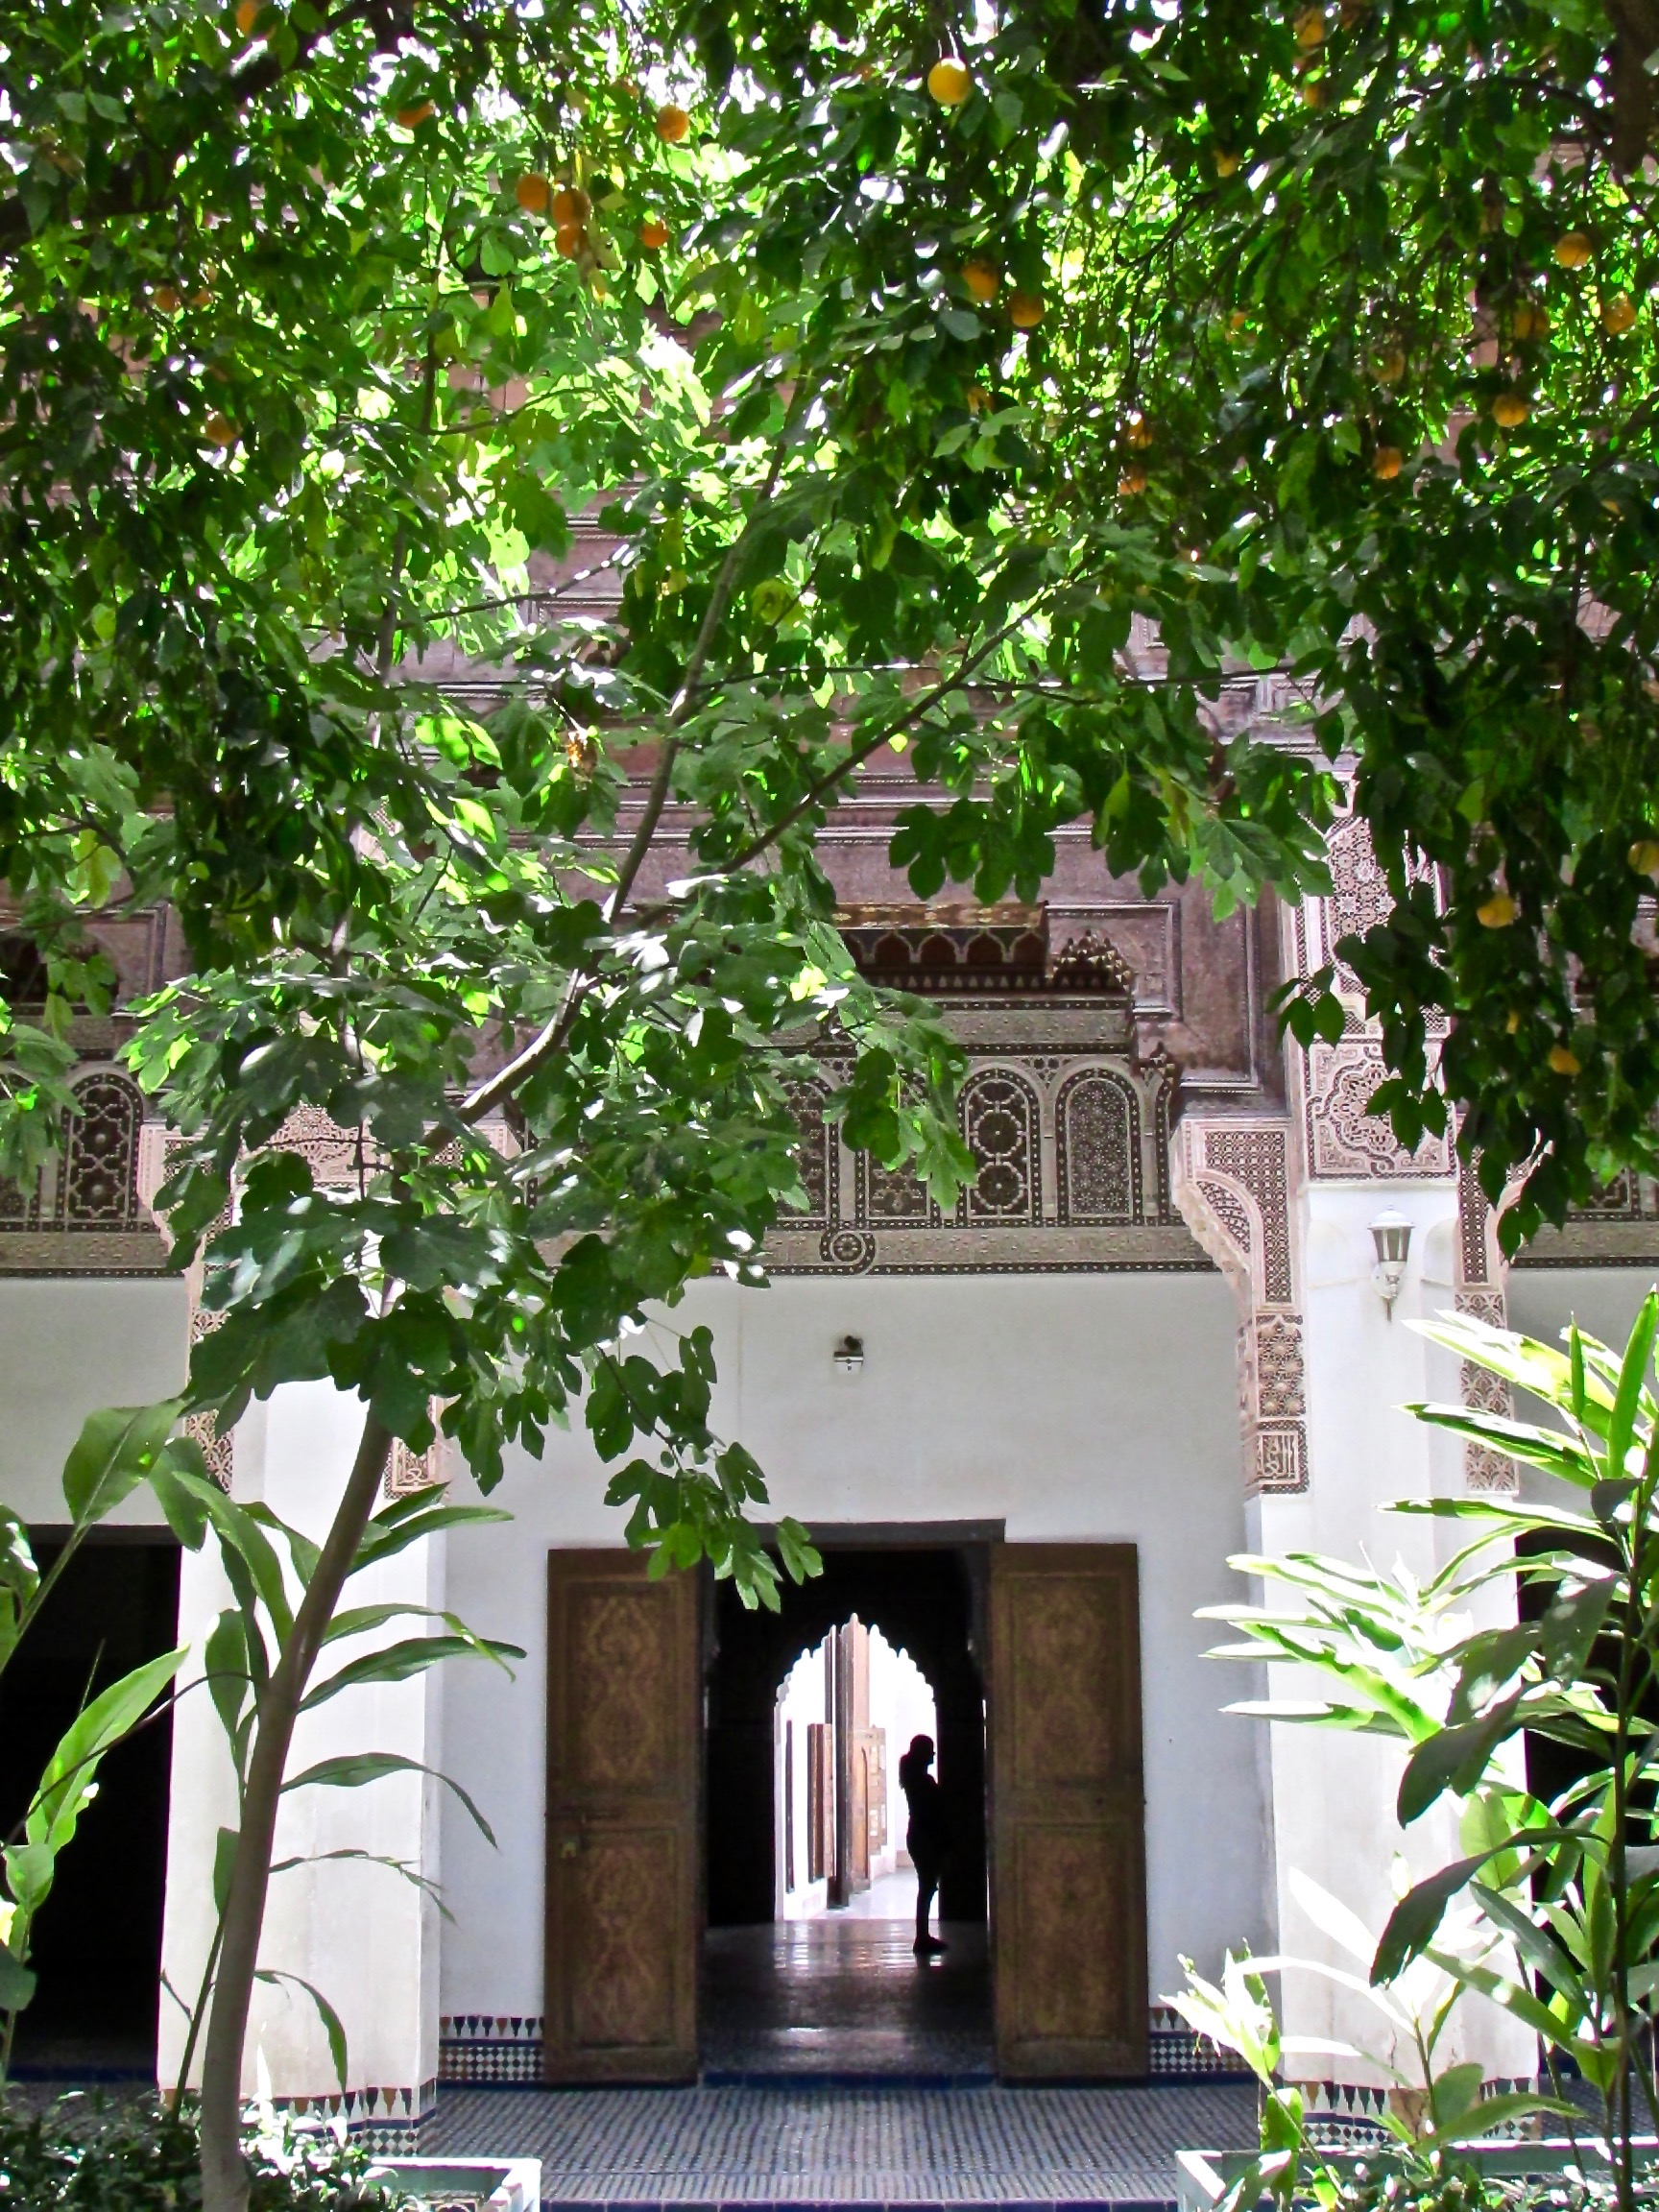 Bahia Palace in Marrakesh Morocco